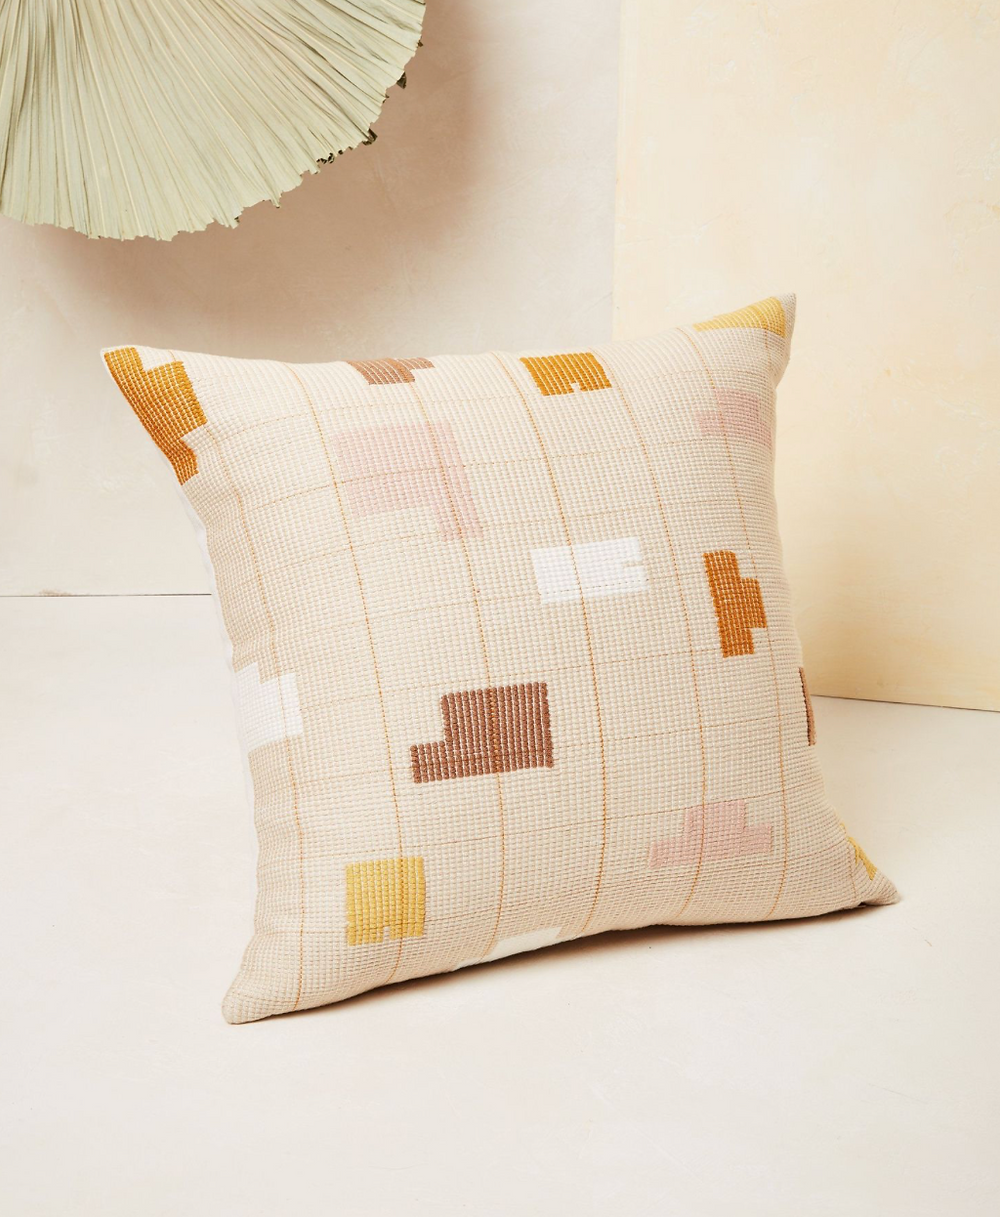 Blush, white, eggplant and gold sustainable pillow.